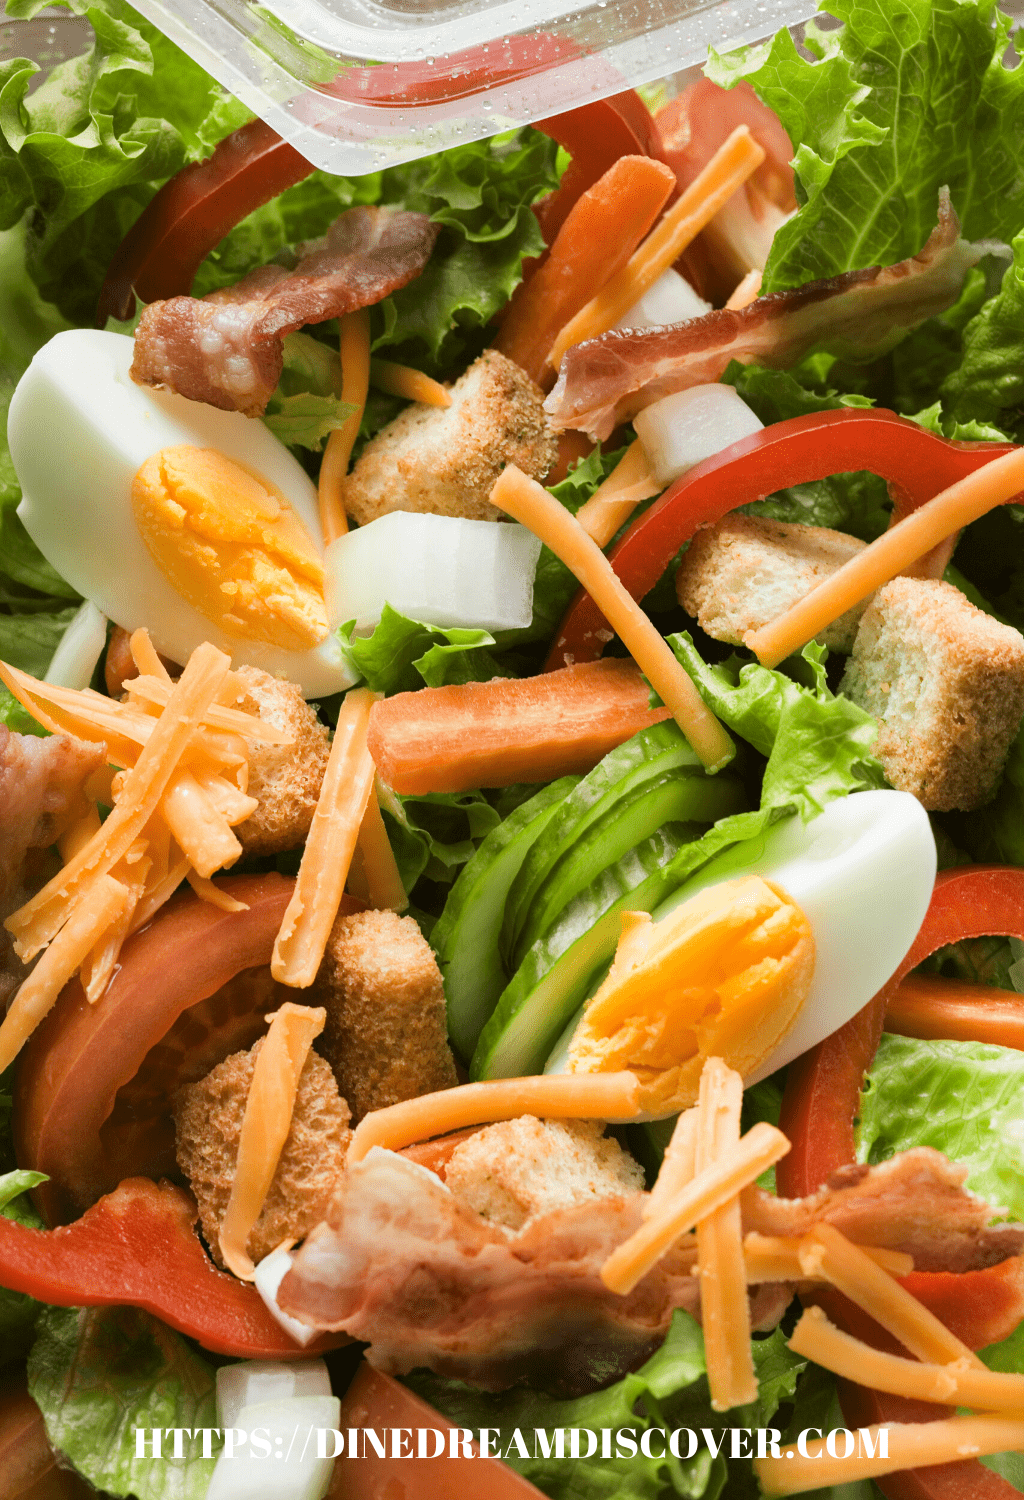 Simple and Healthy Salad RECIPES